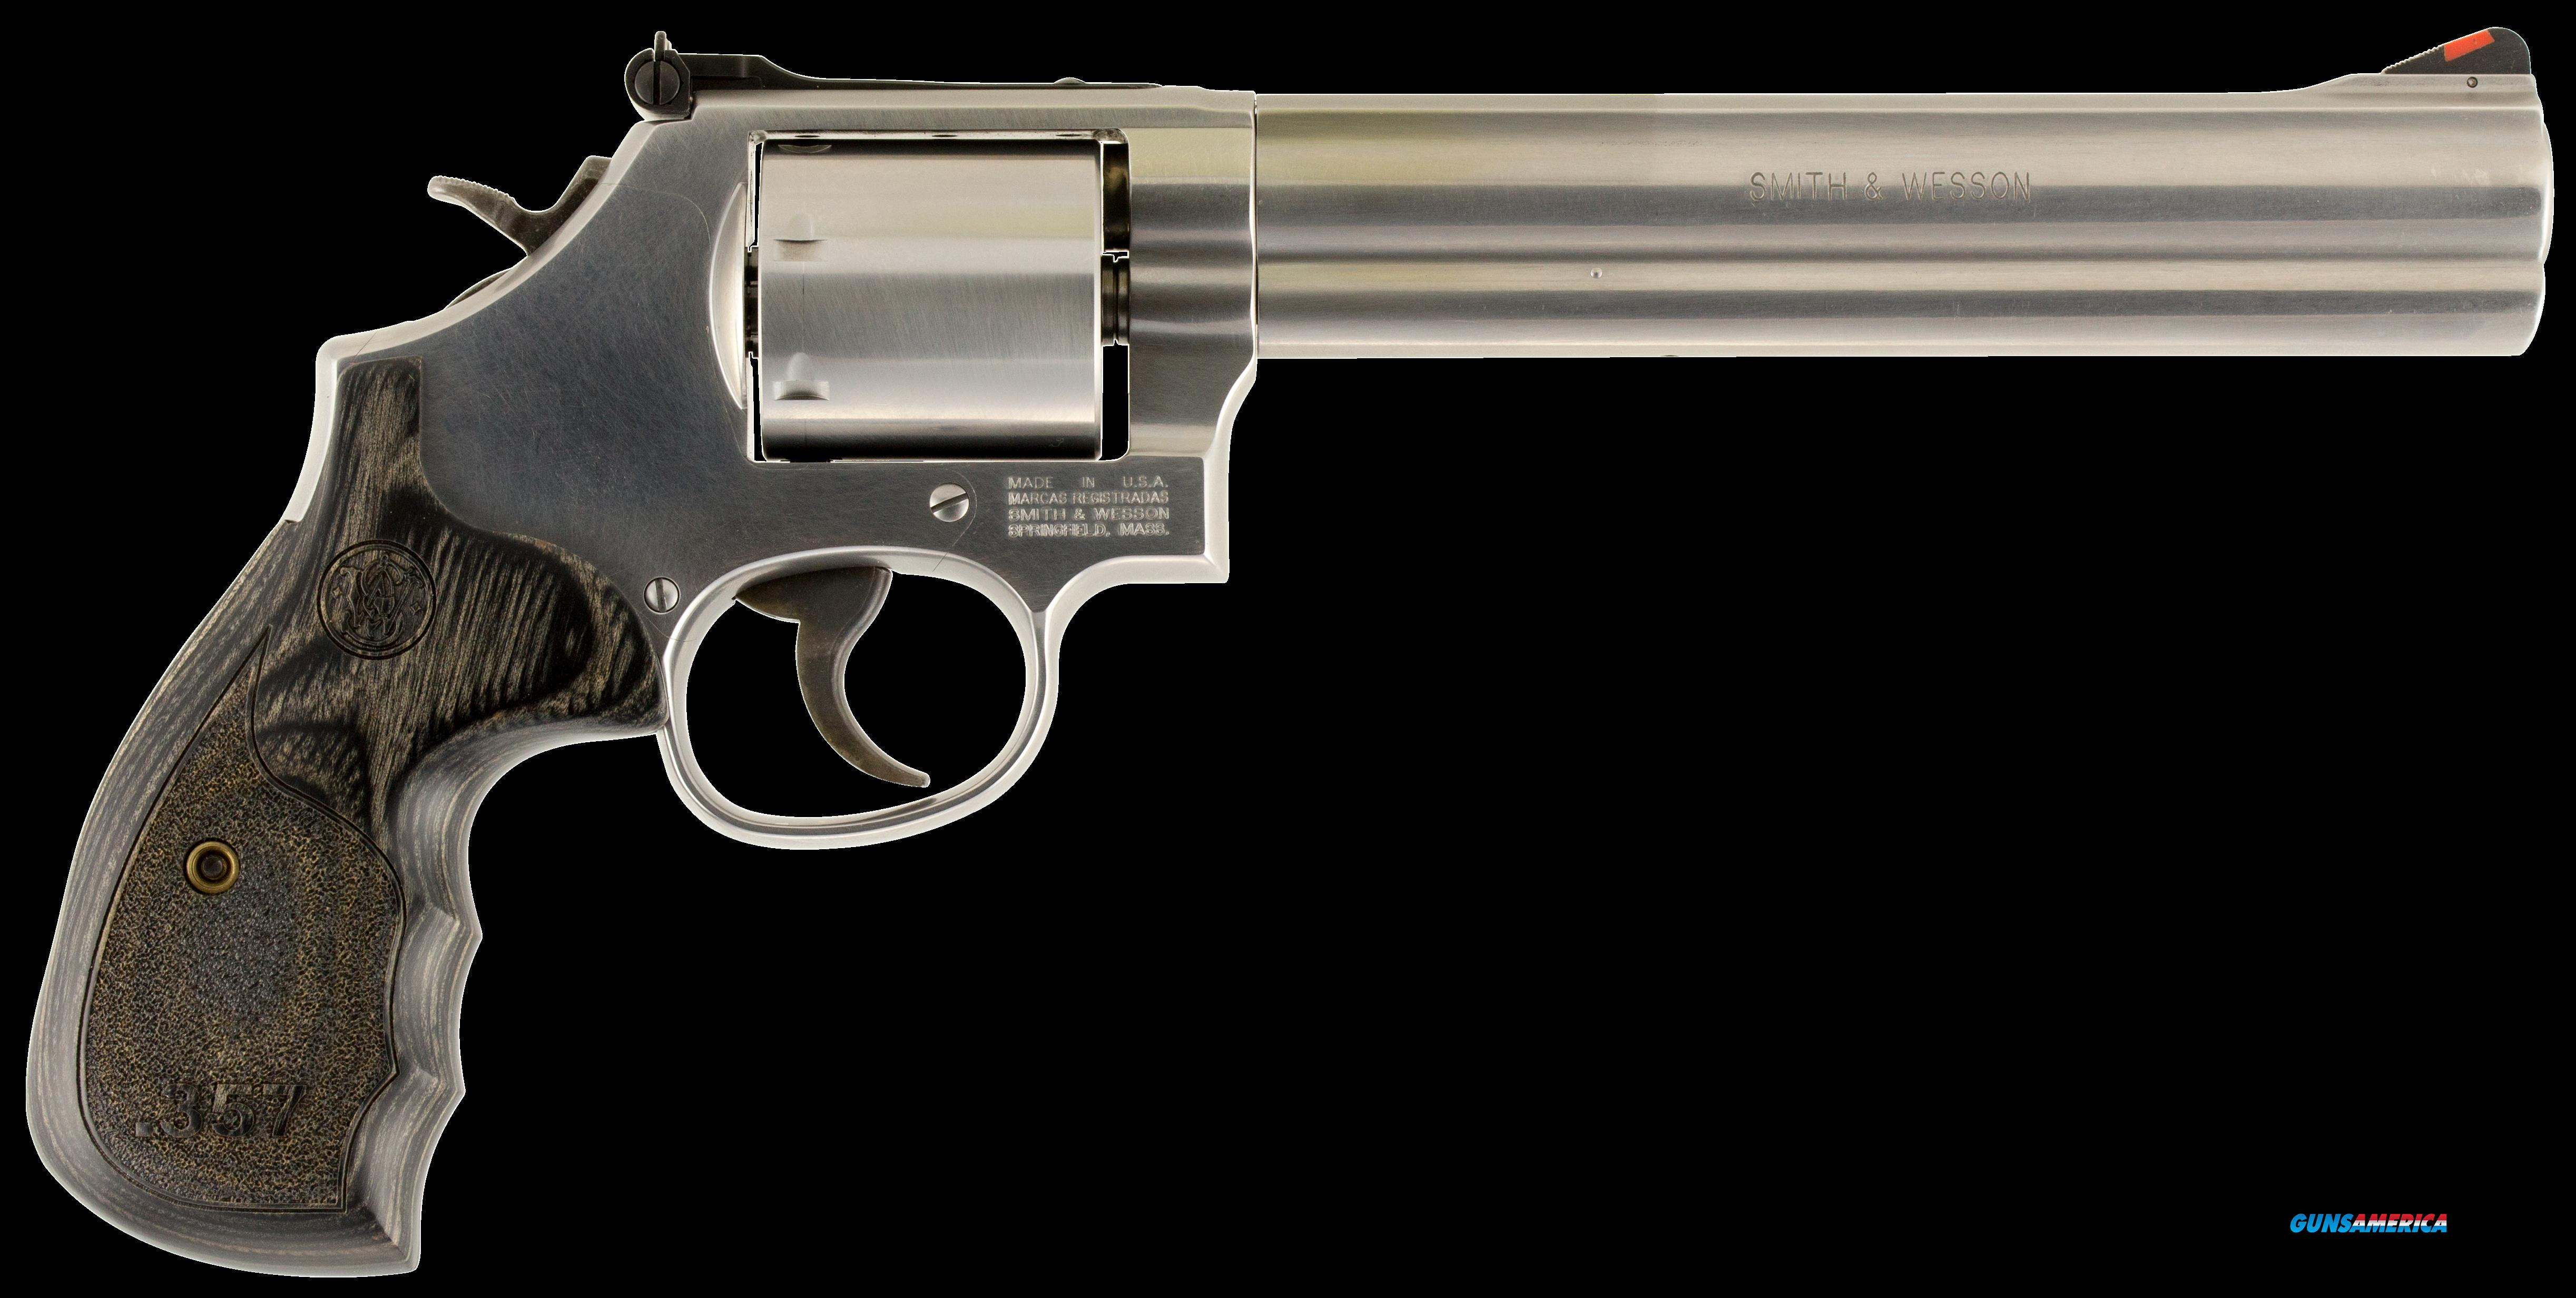 "Smith & Wesson 150855 686 Plus Single/Double 357 Magnum 7"" 7 rd Wood Grip Stainless Steel  Guns > Pistols > S Misc Pistols"